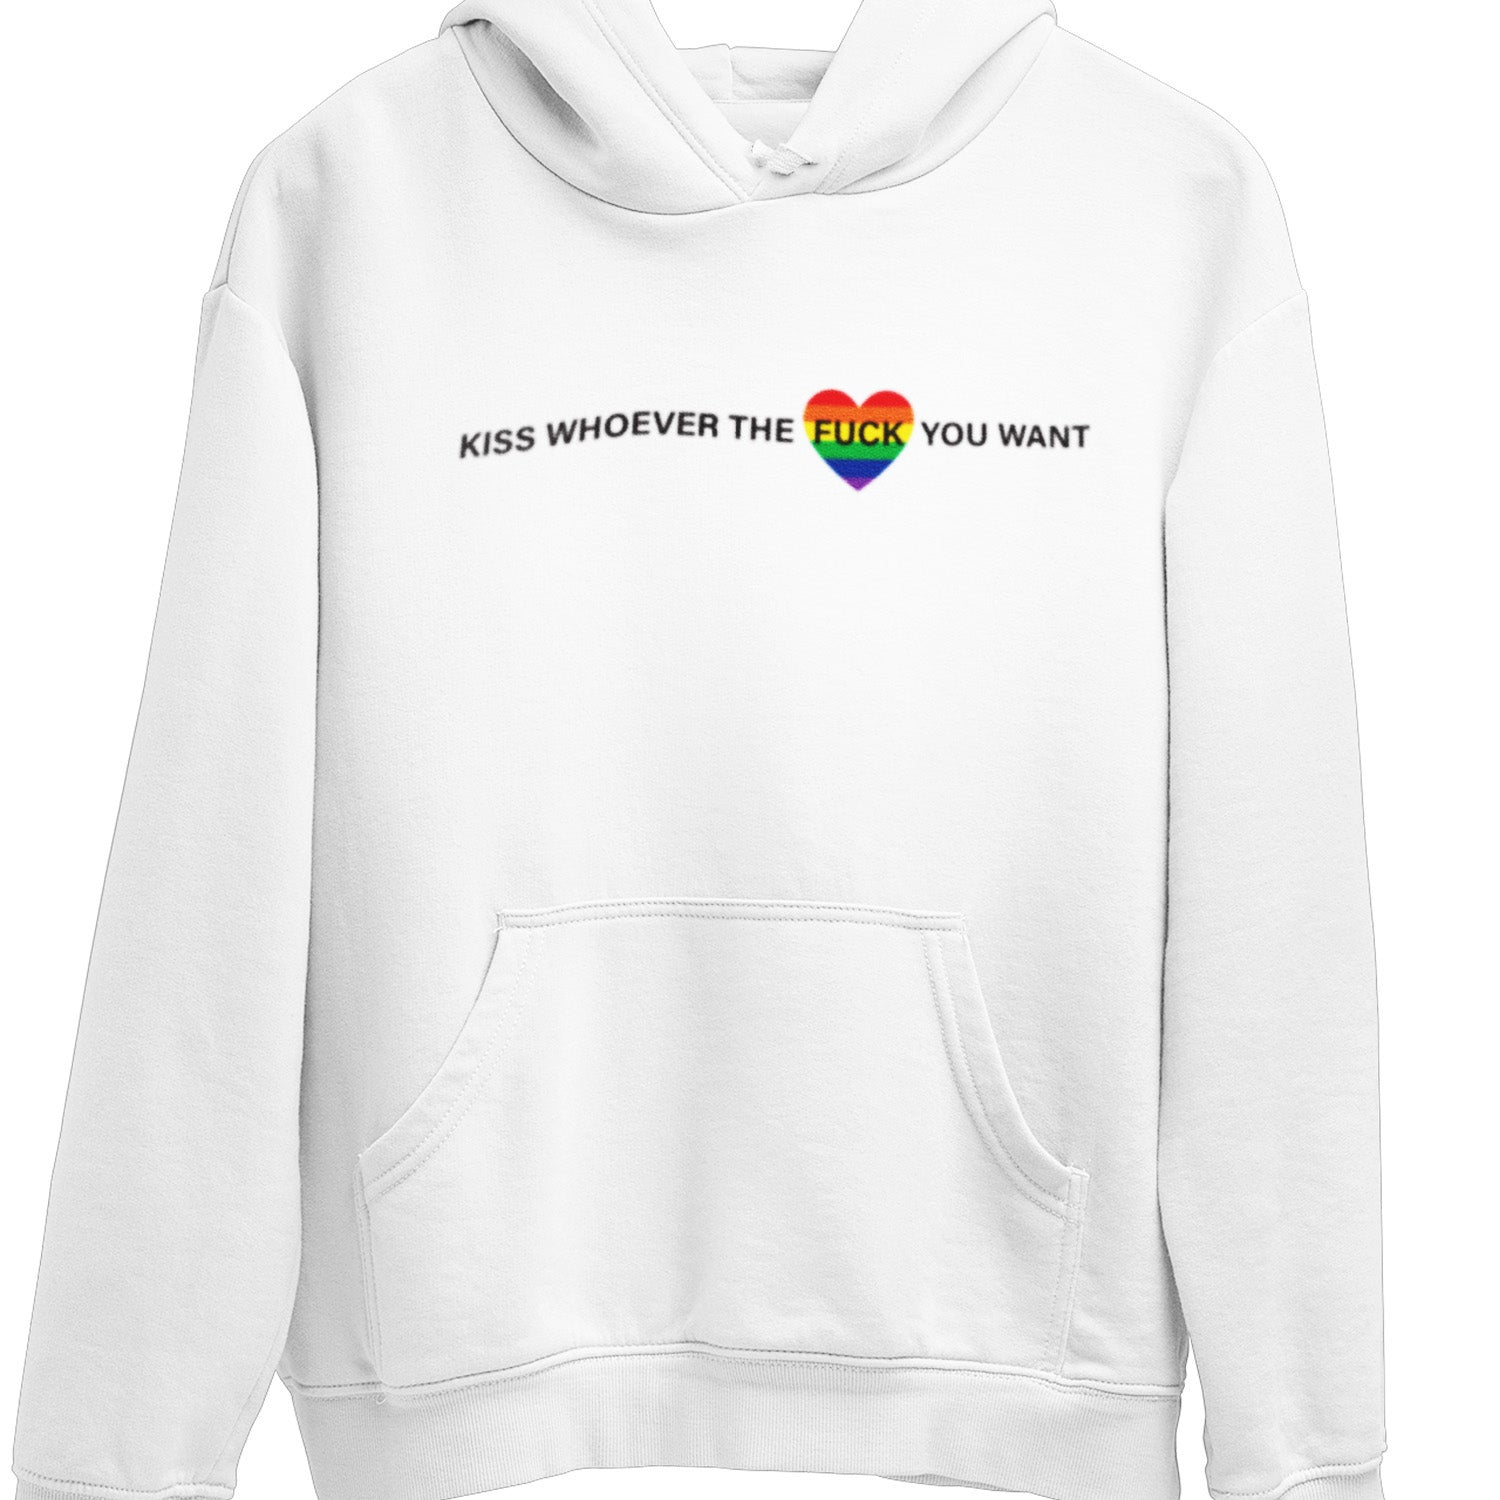 Kiss who ever the fuck you want LGBTQ Pride hoodie